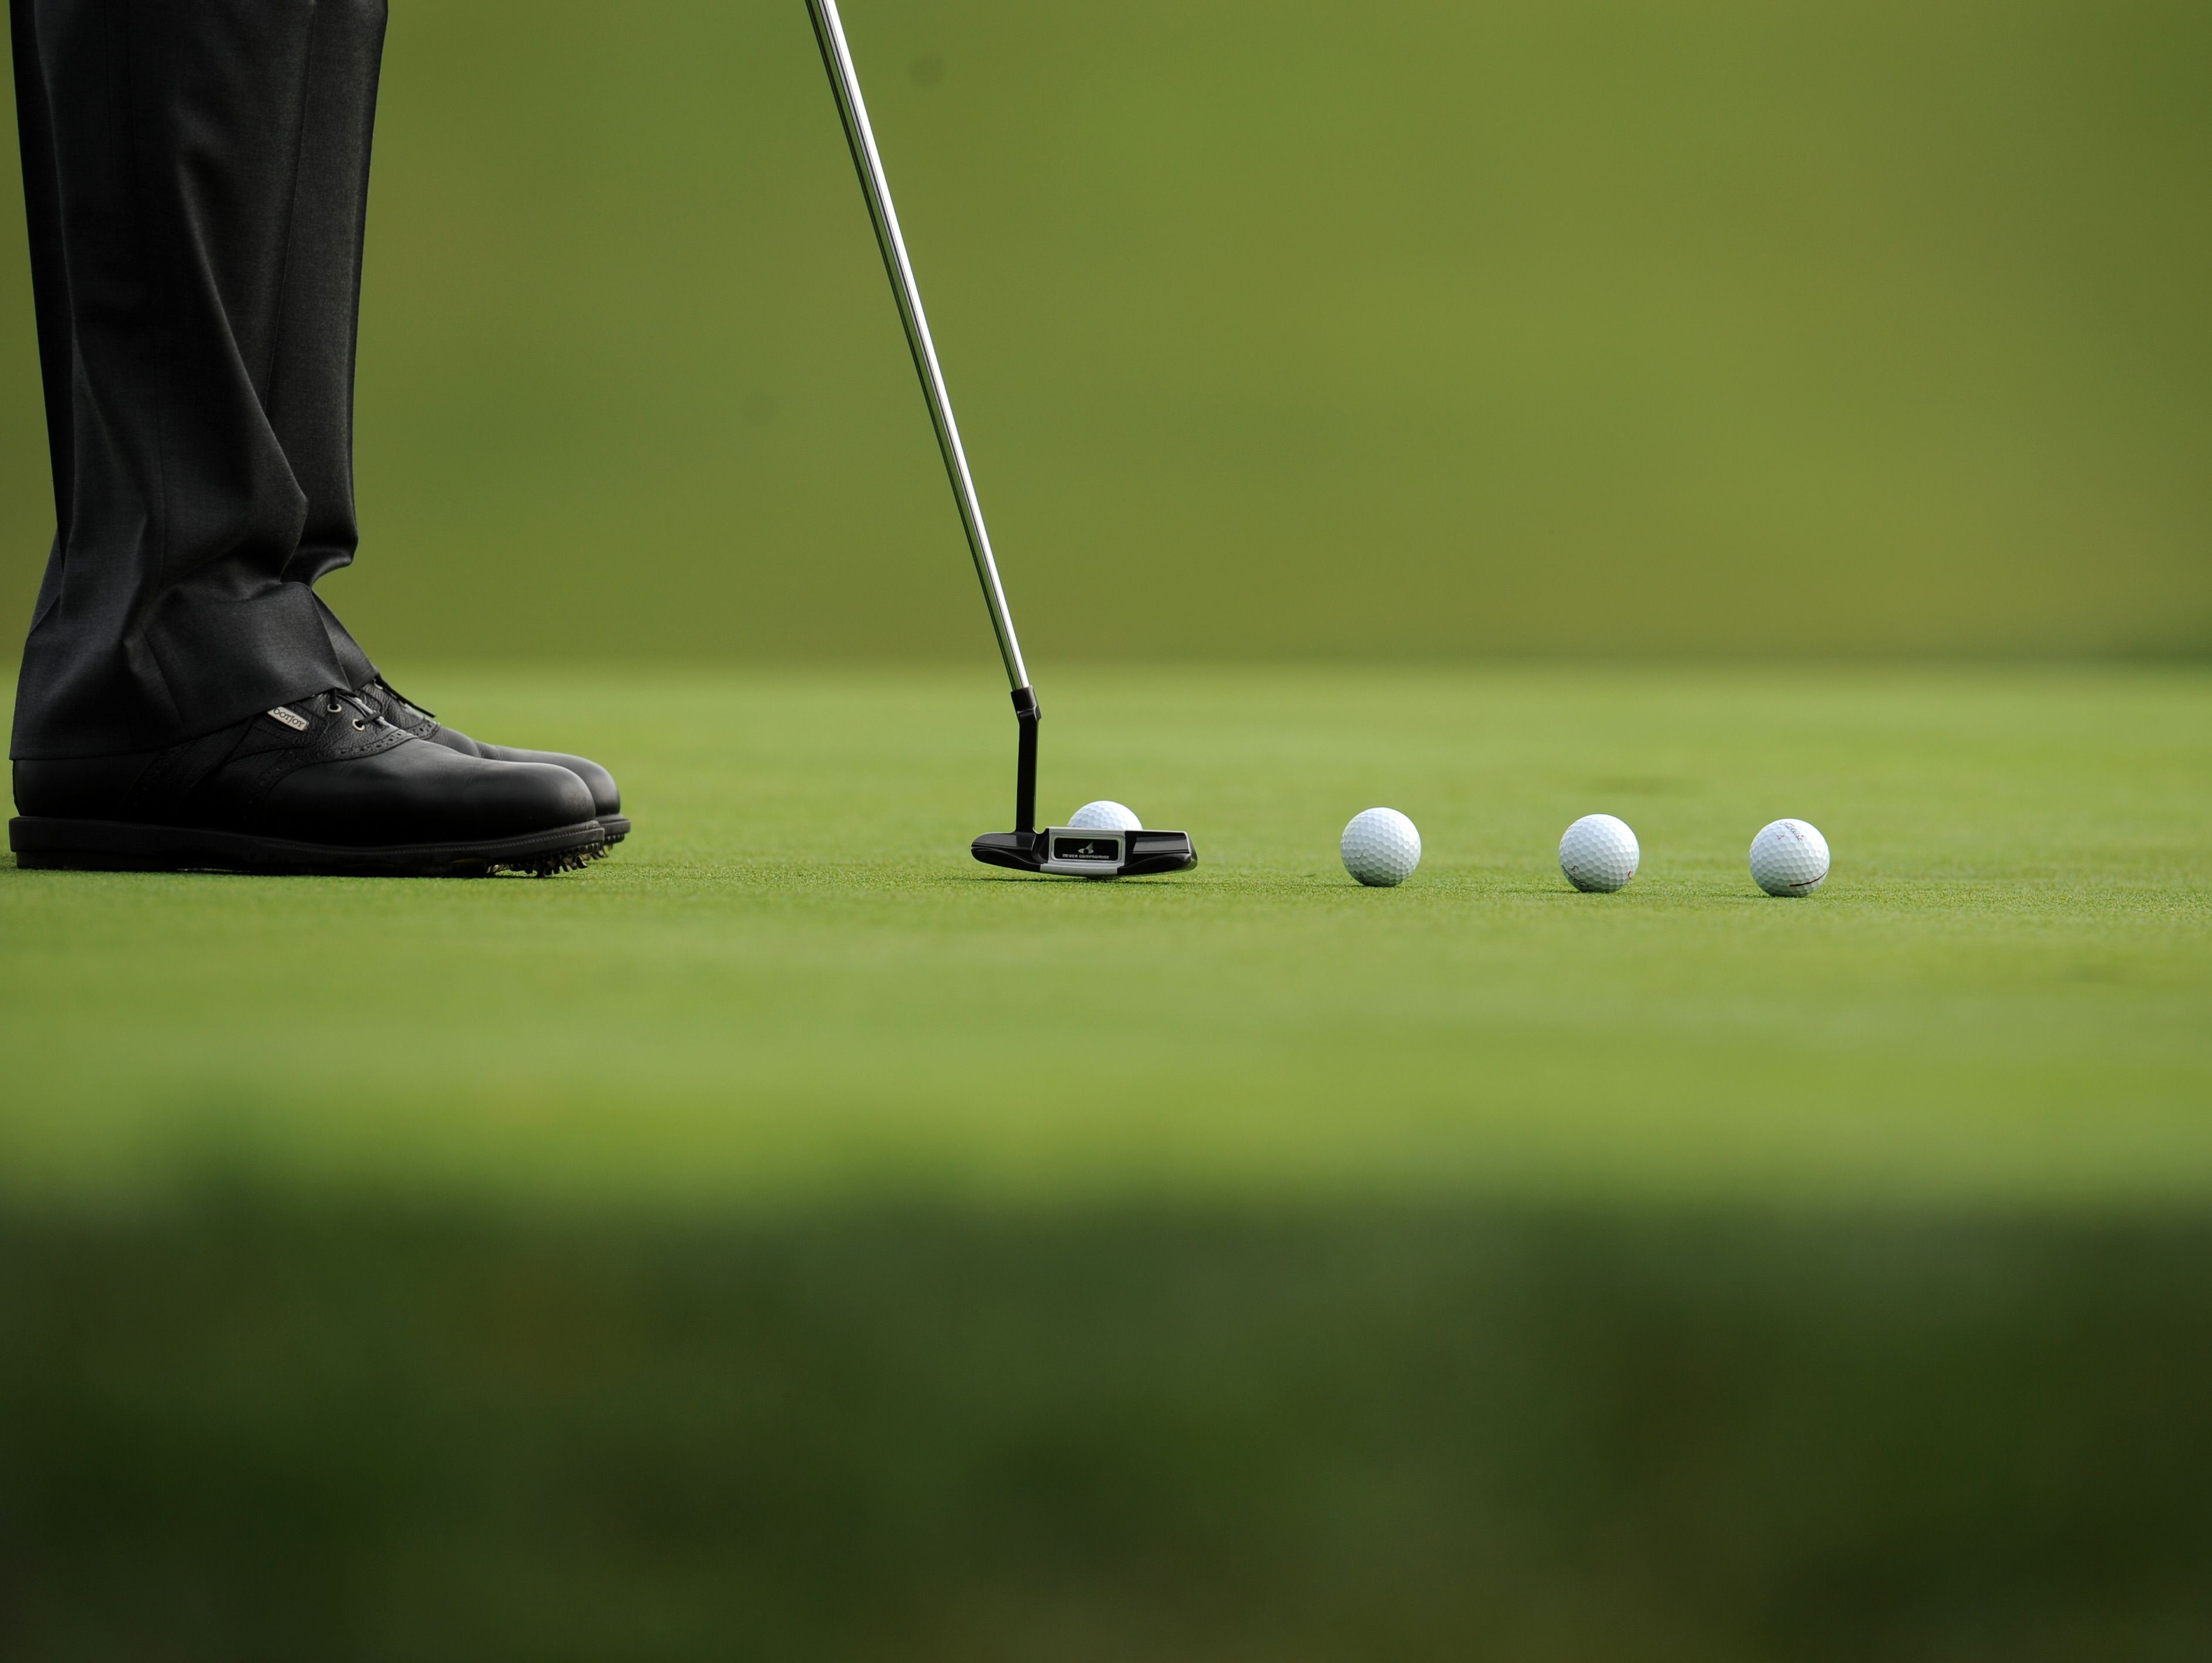 Vijay Singh of Fiji practices putting on the second green during a practice round for the US Open at Torrey Pines Golf Course in San Diego, California on June 11, 2008. AFP PHOTO / ROBYN BECK (Photo credit should read ROBYN BECK/AFP/Getty Images)